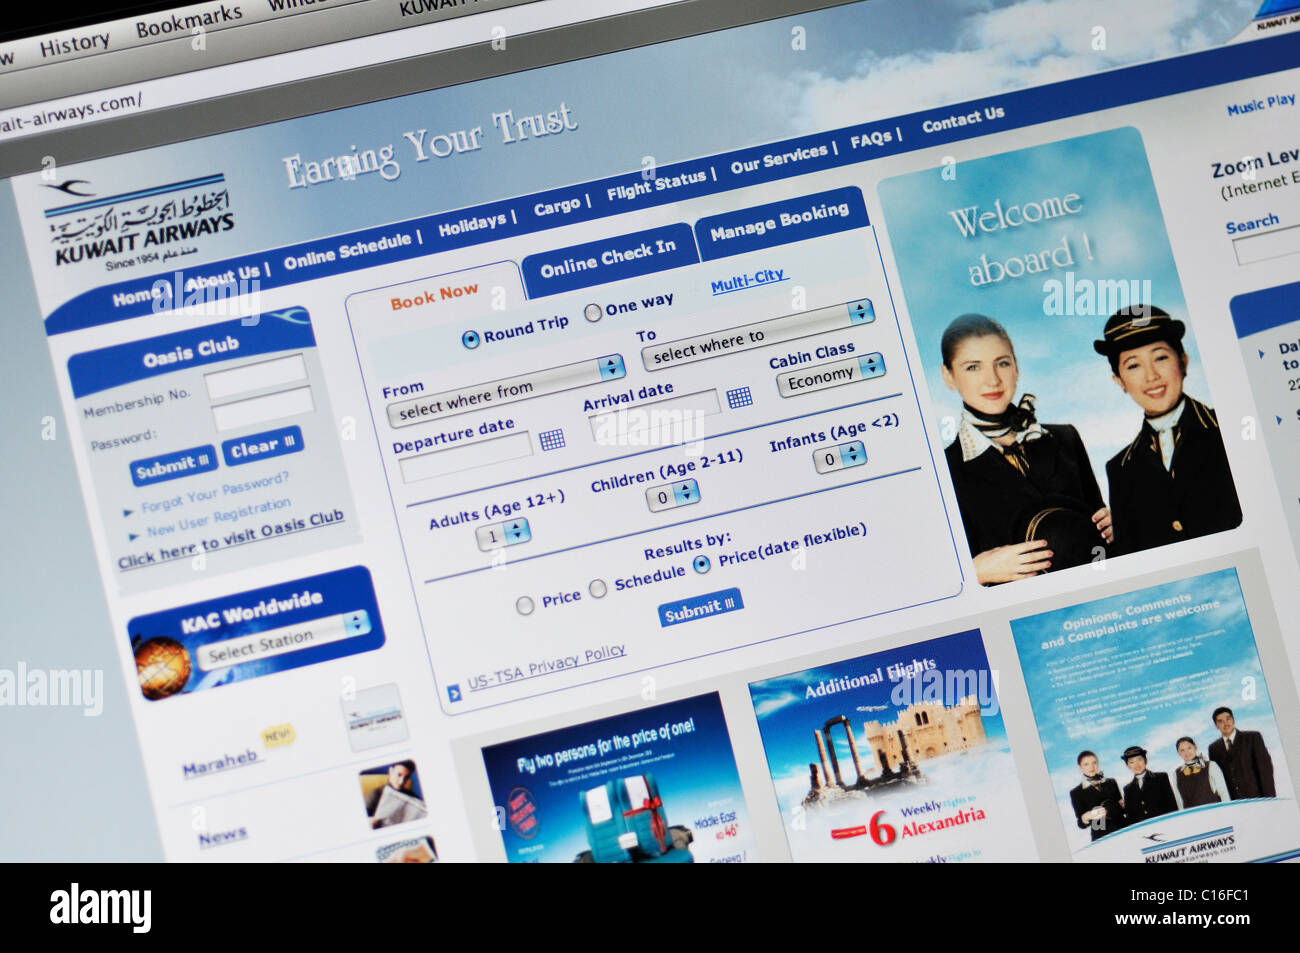 Kuwait Airlines website - Stock Image